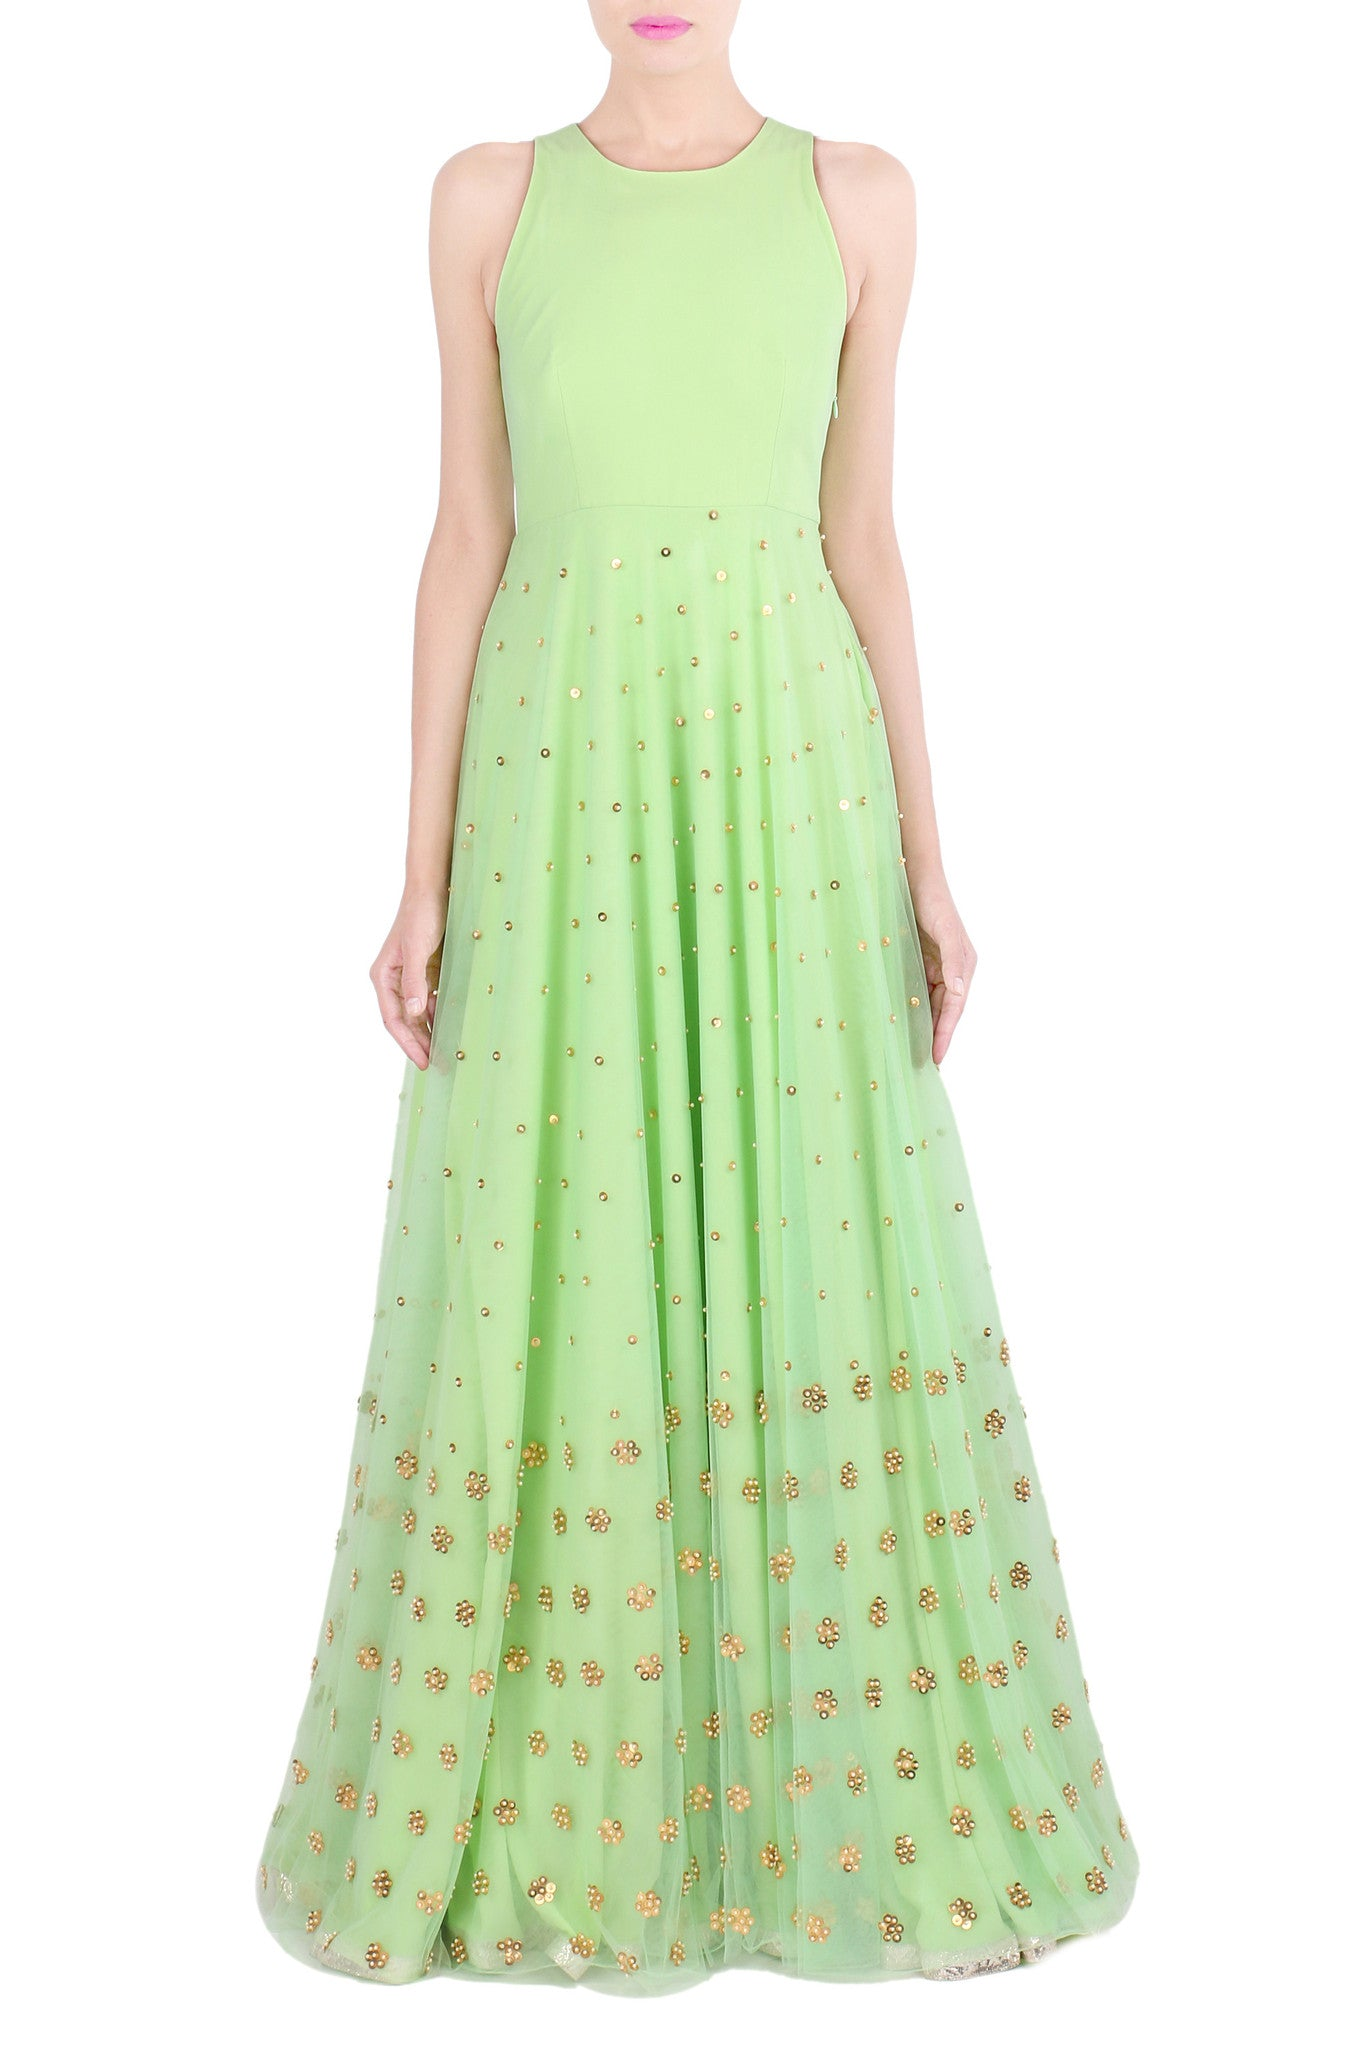 Mint Gown with Gold Metallic Work | VIVA-LUXE